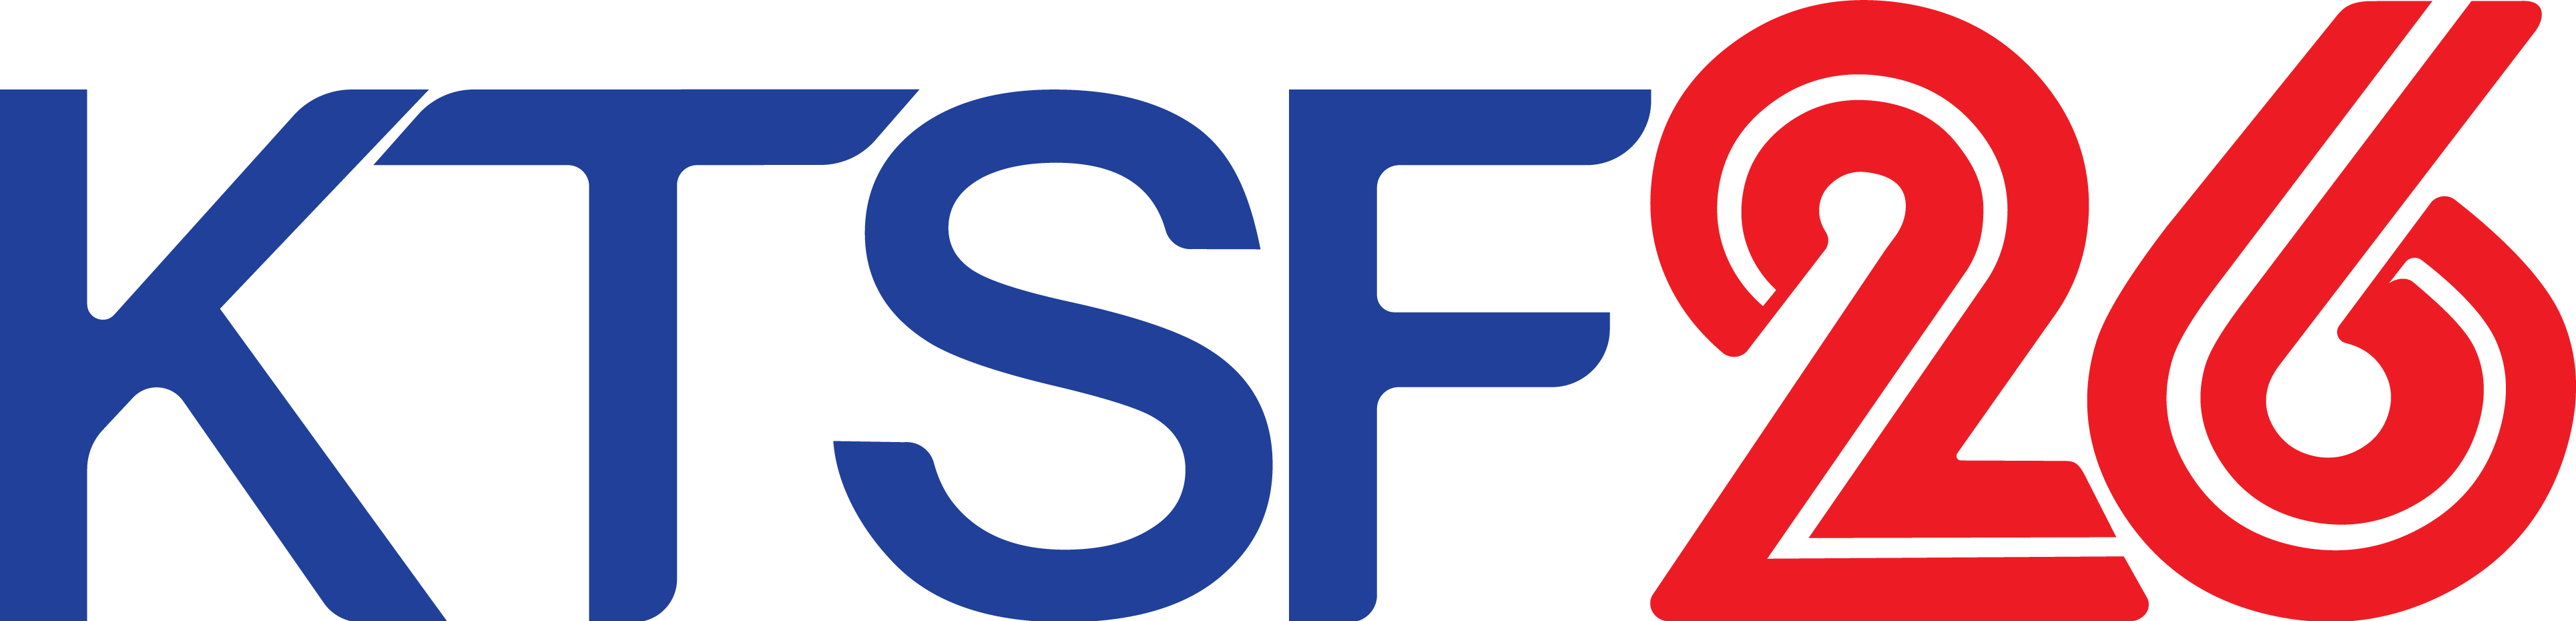 KTSF Channel 26 – San Francisco Bay Area